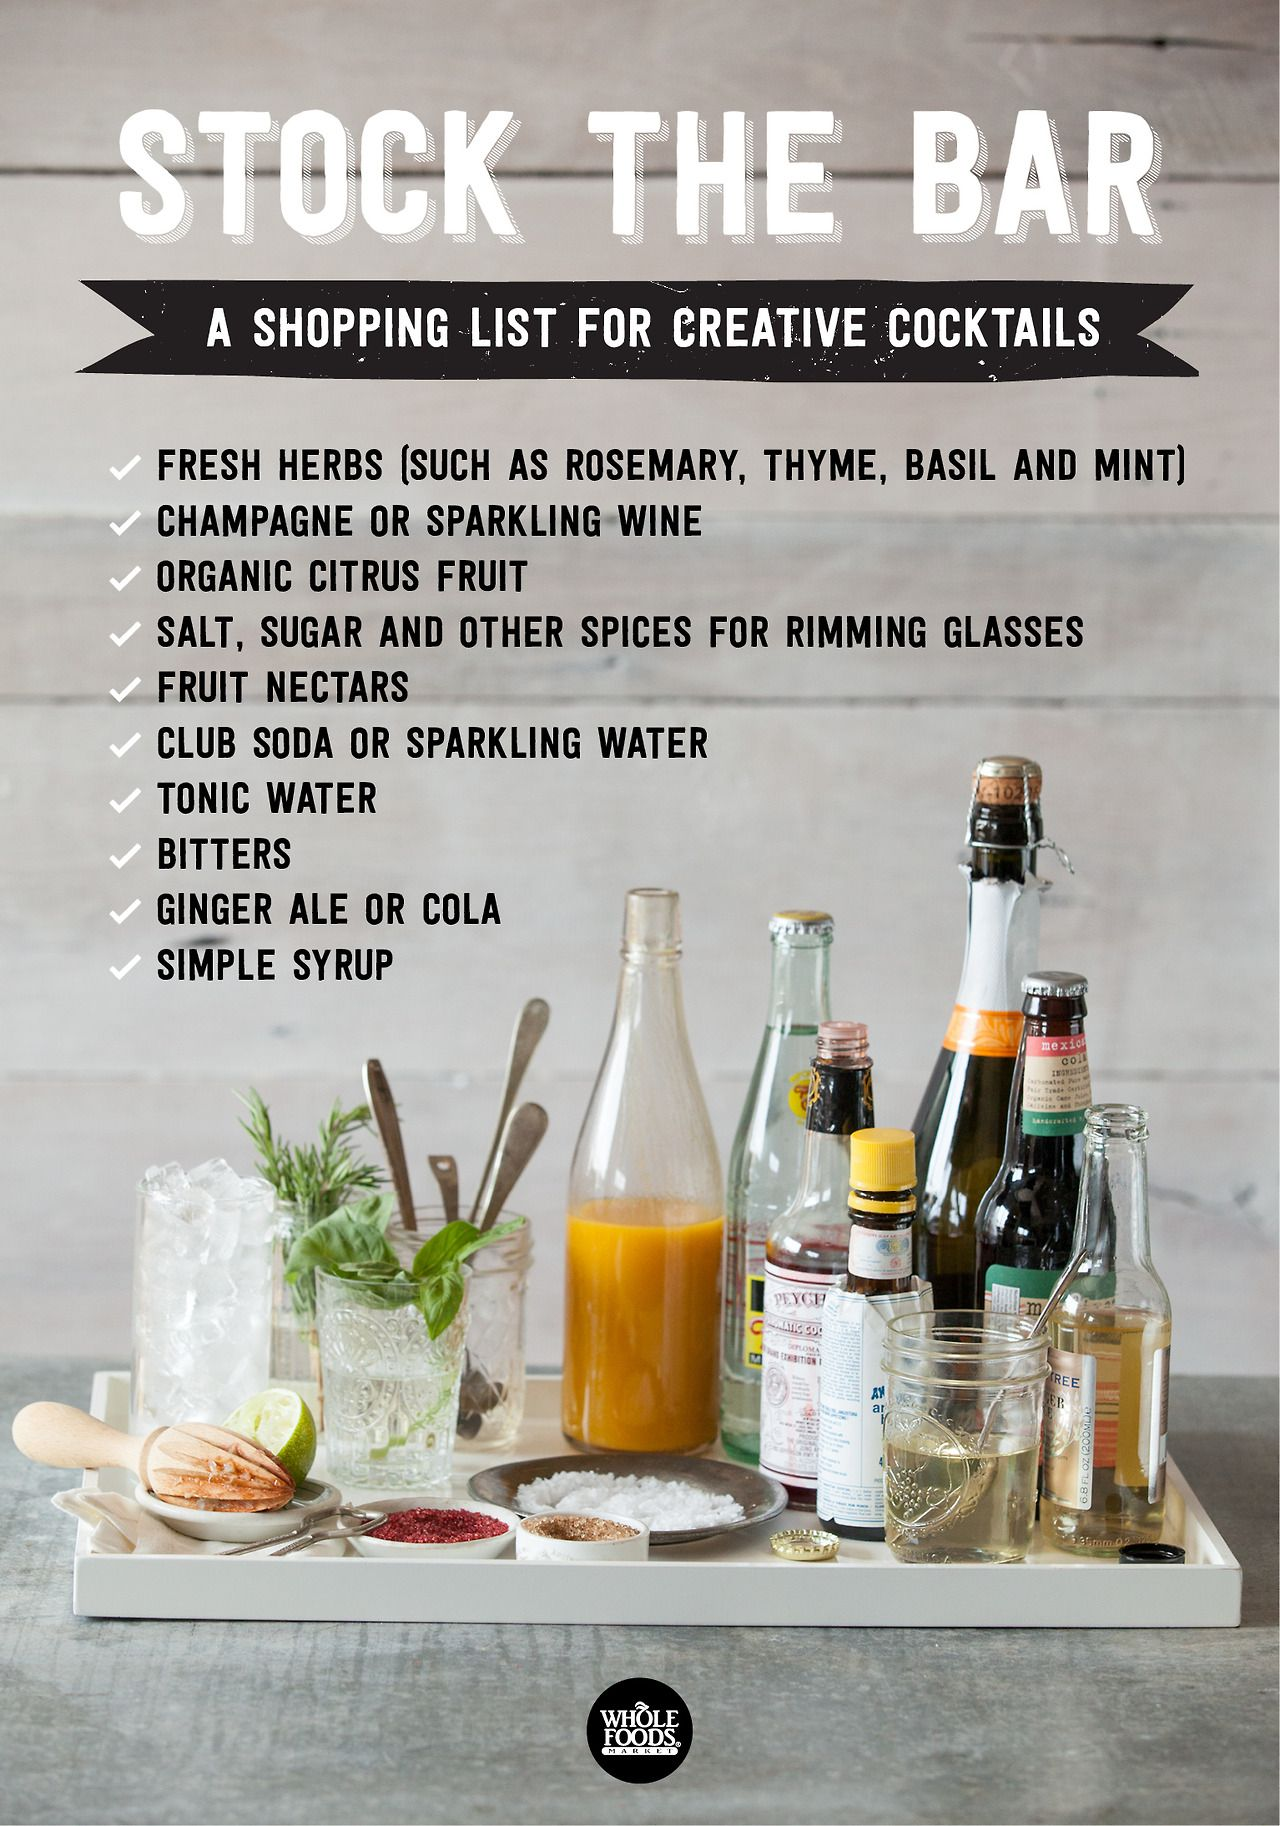 From Whole Foods: Stock the Bar, a Shopping List for Creative ...